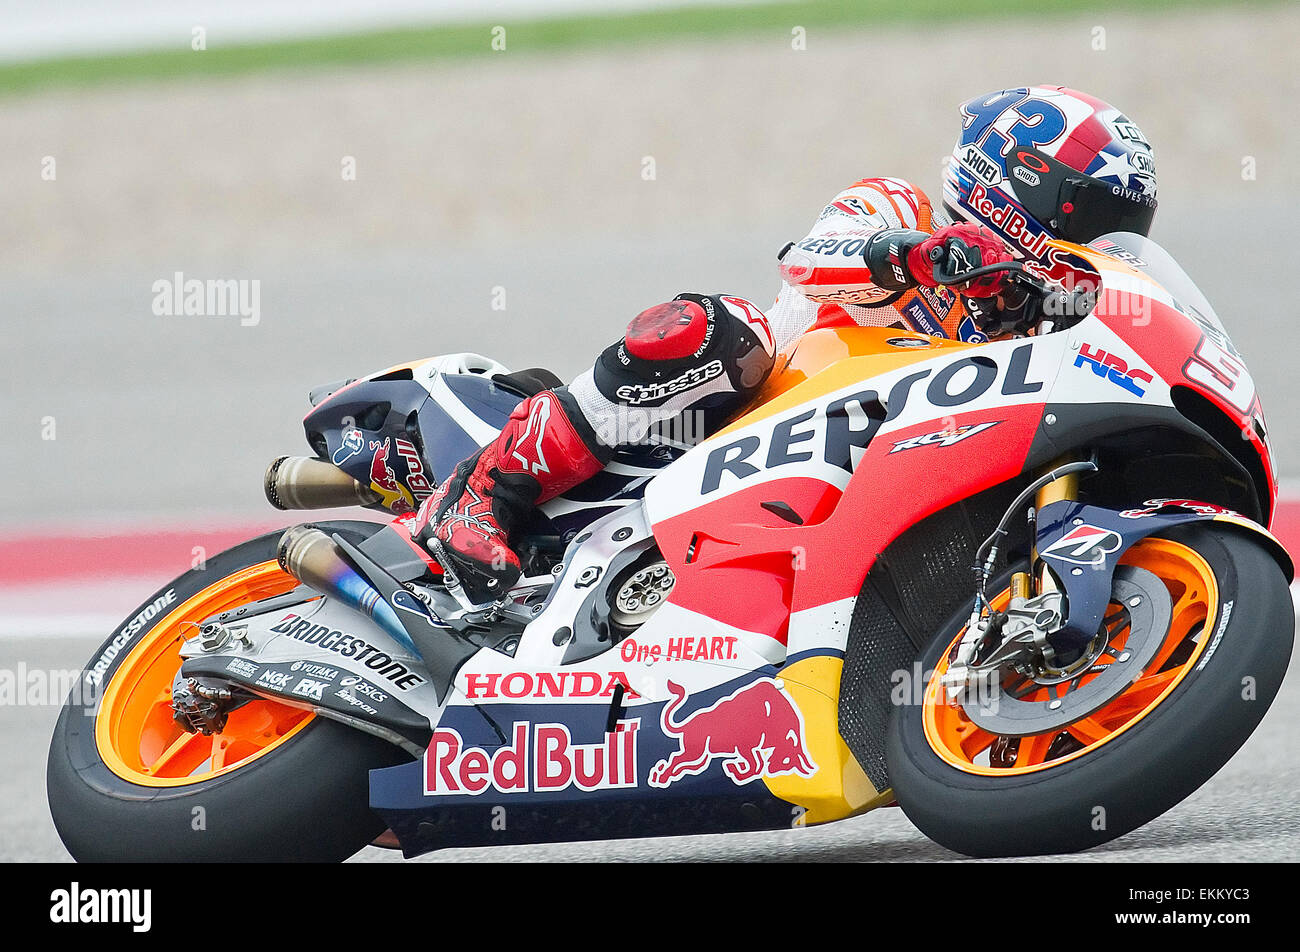 Austin Texas USA 11th April 2015 MotoGP Marc Marquez 93 With Repsol Honda Team In Action At Red Bull Grand Prix Of The Americas